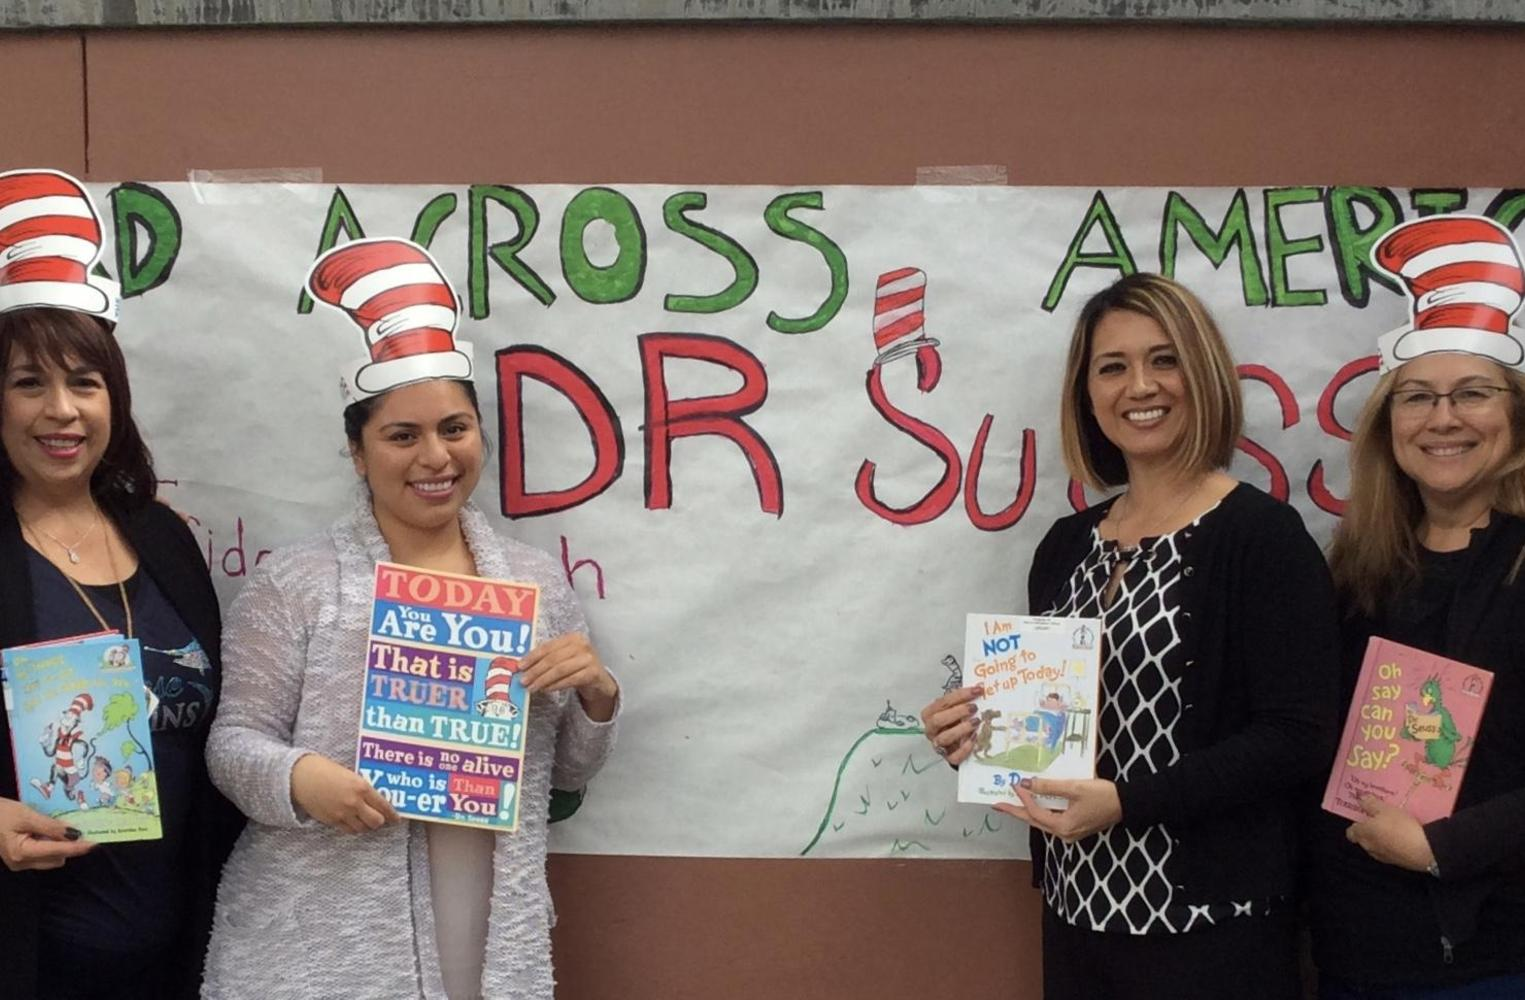 Office staff with Dr. Seuss books